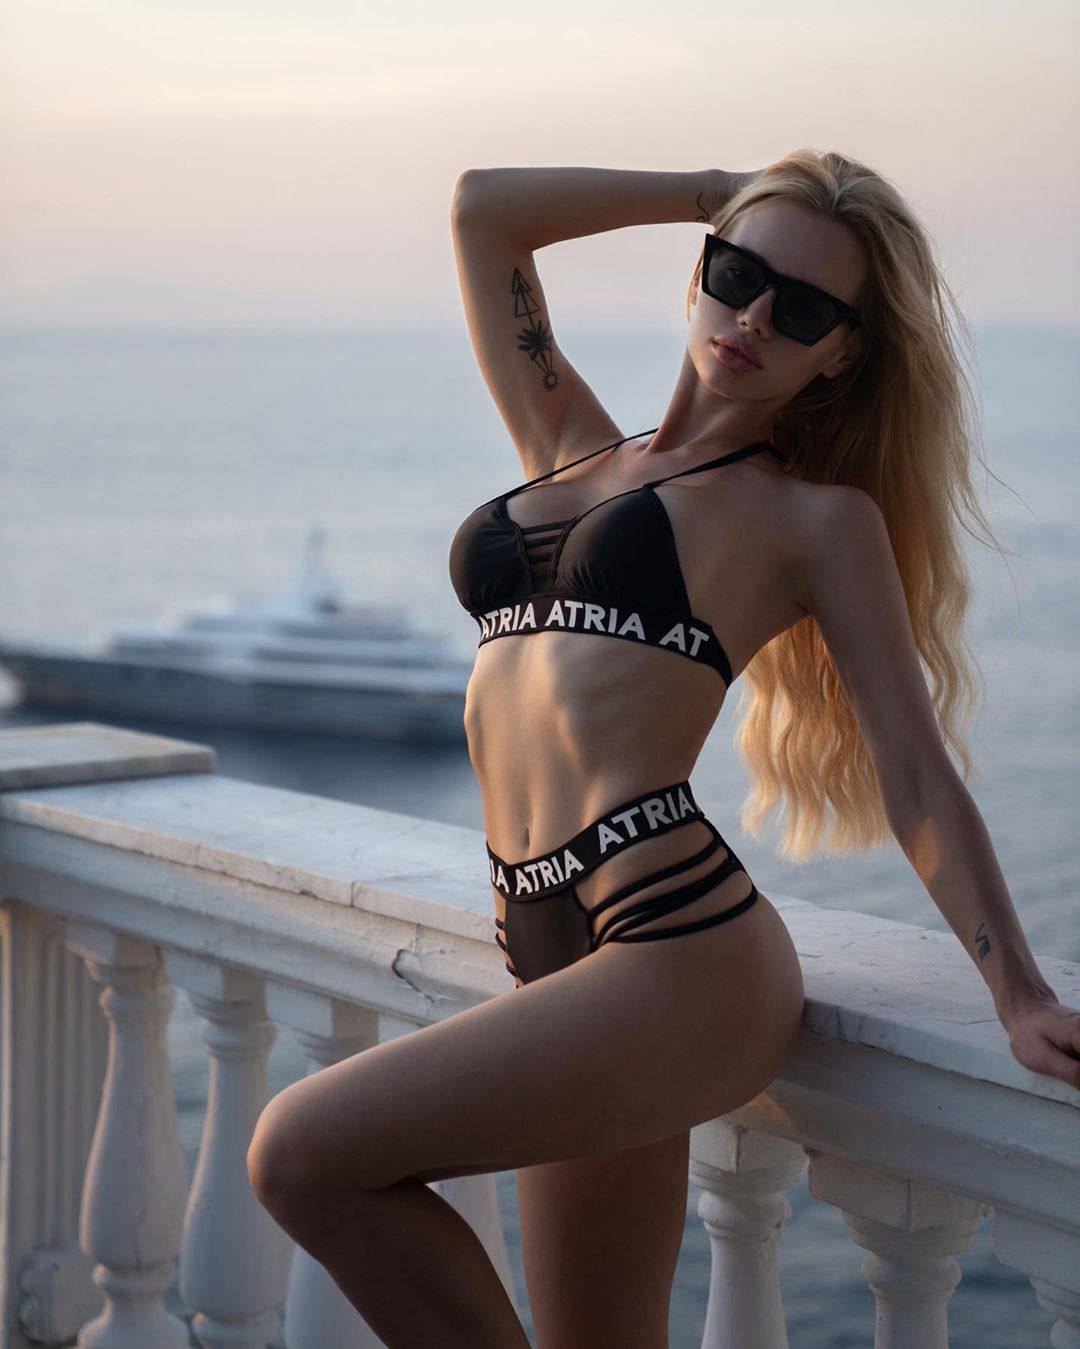 Olya Abramovich – Hot Boobs In Topless Beach Photoshoot (nsfw) 0041